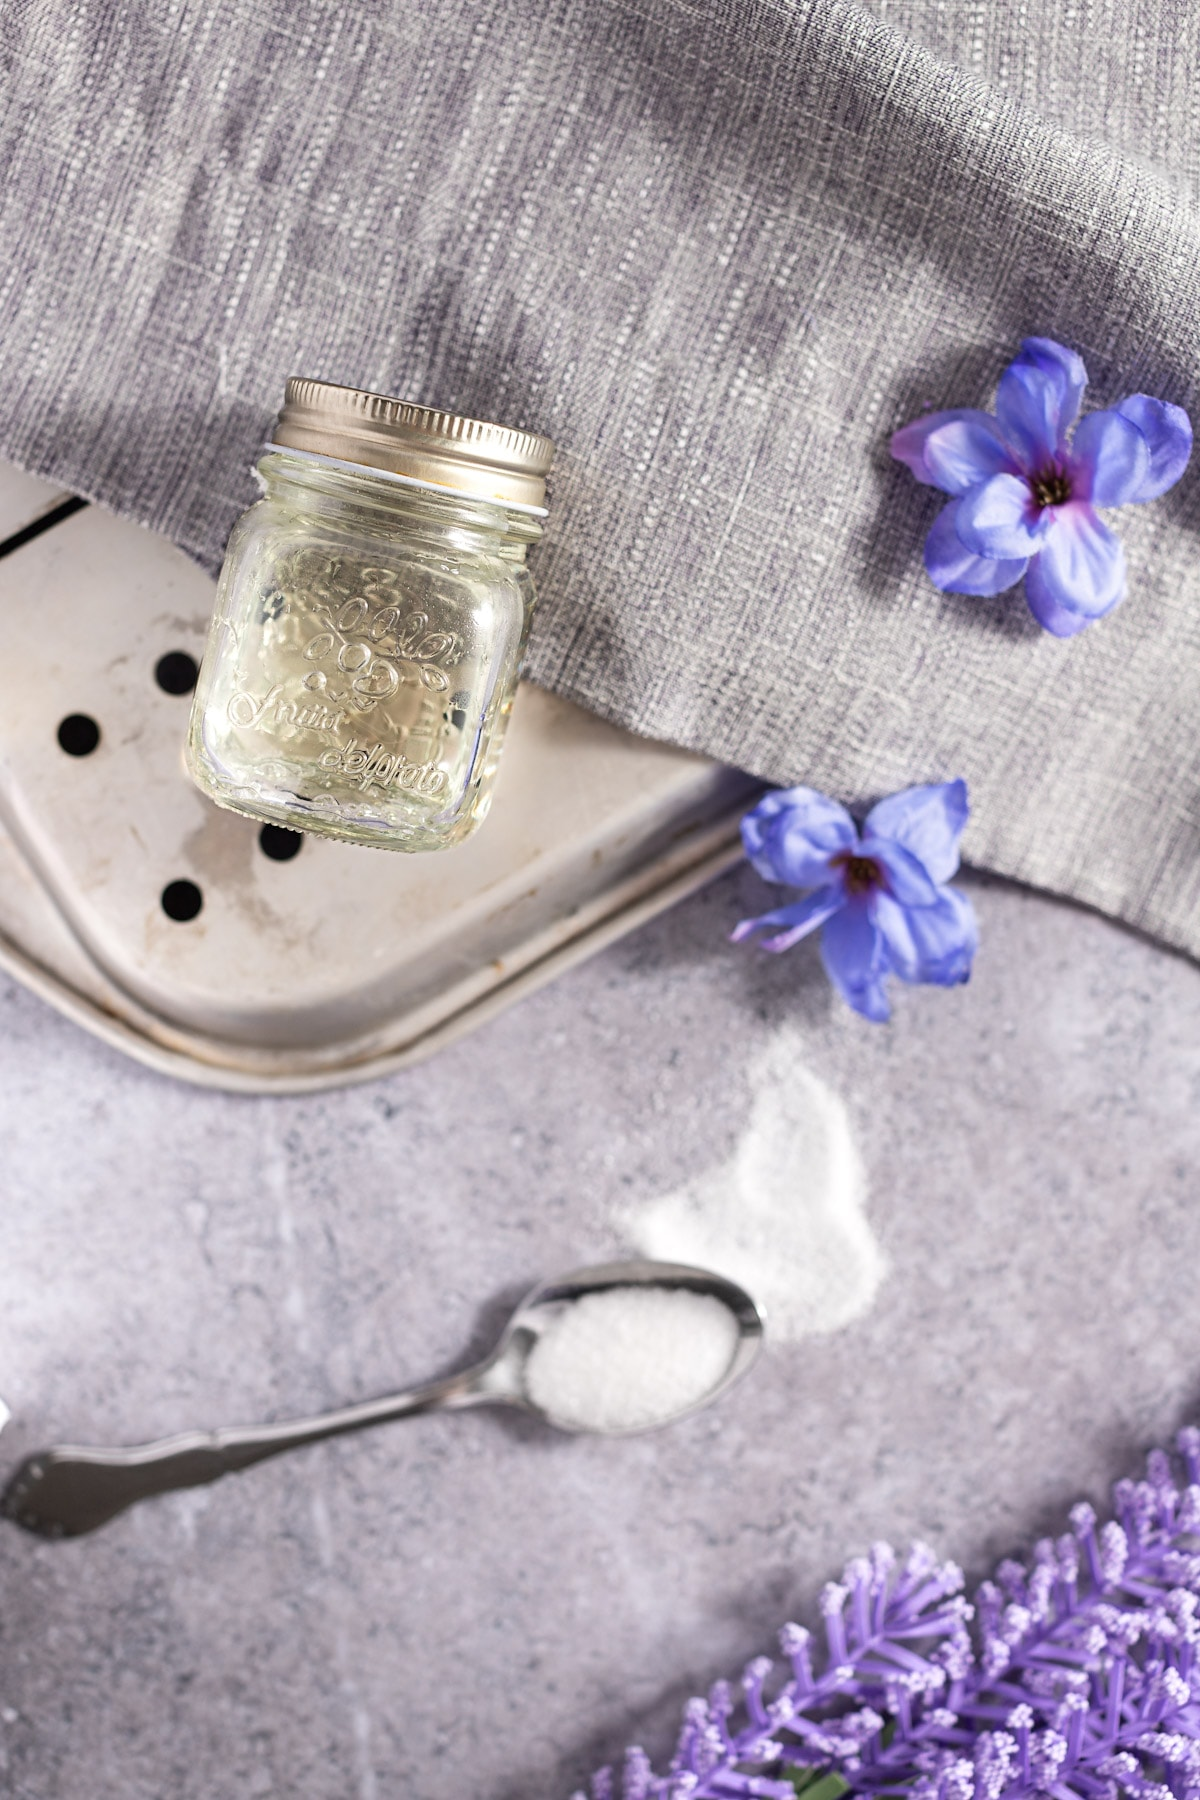 Overhead view of a jar of lavender syrup on a flipped over metal tray, next to purple flowers and a metal spoon filled with white sugar.